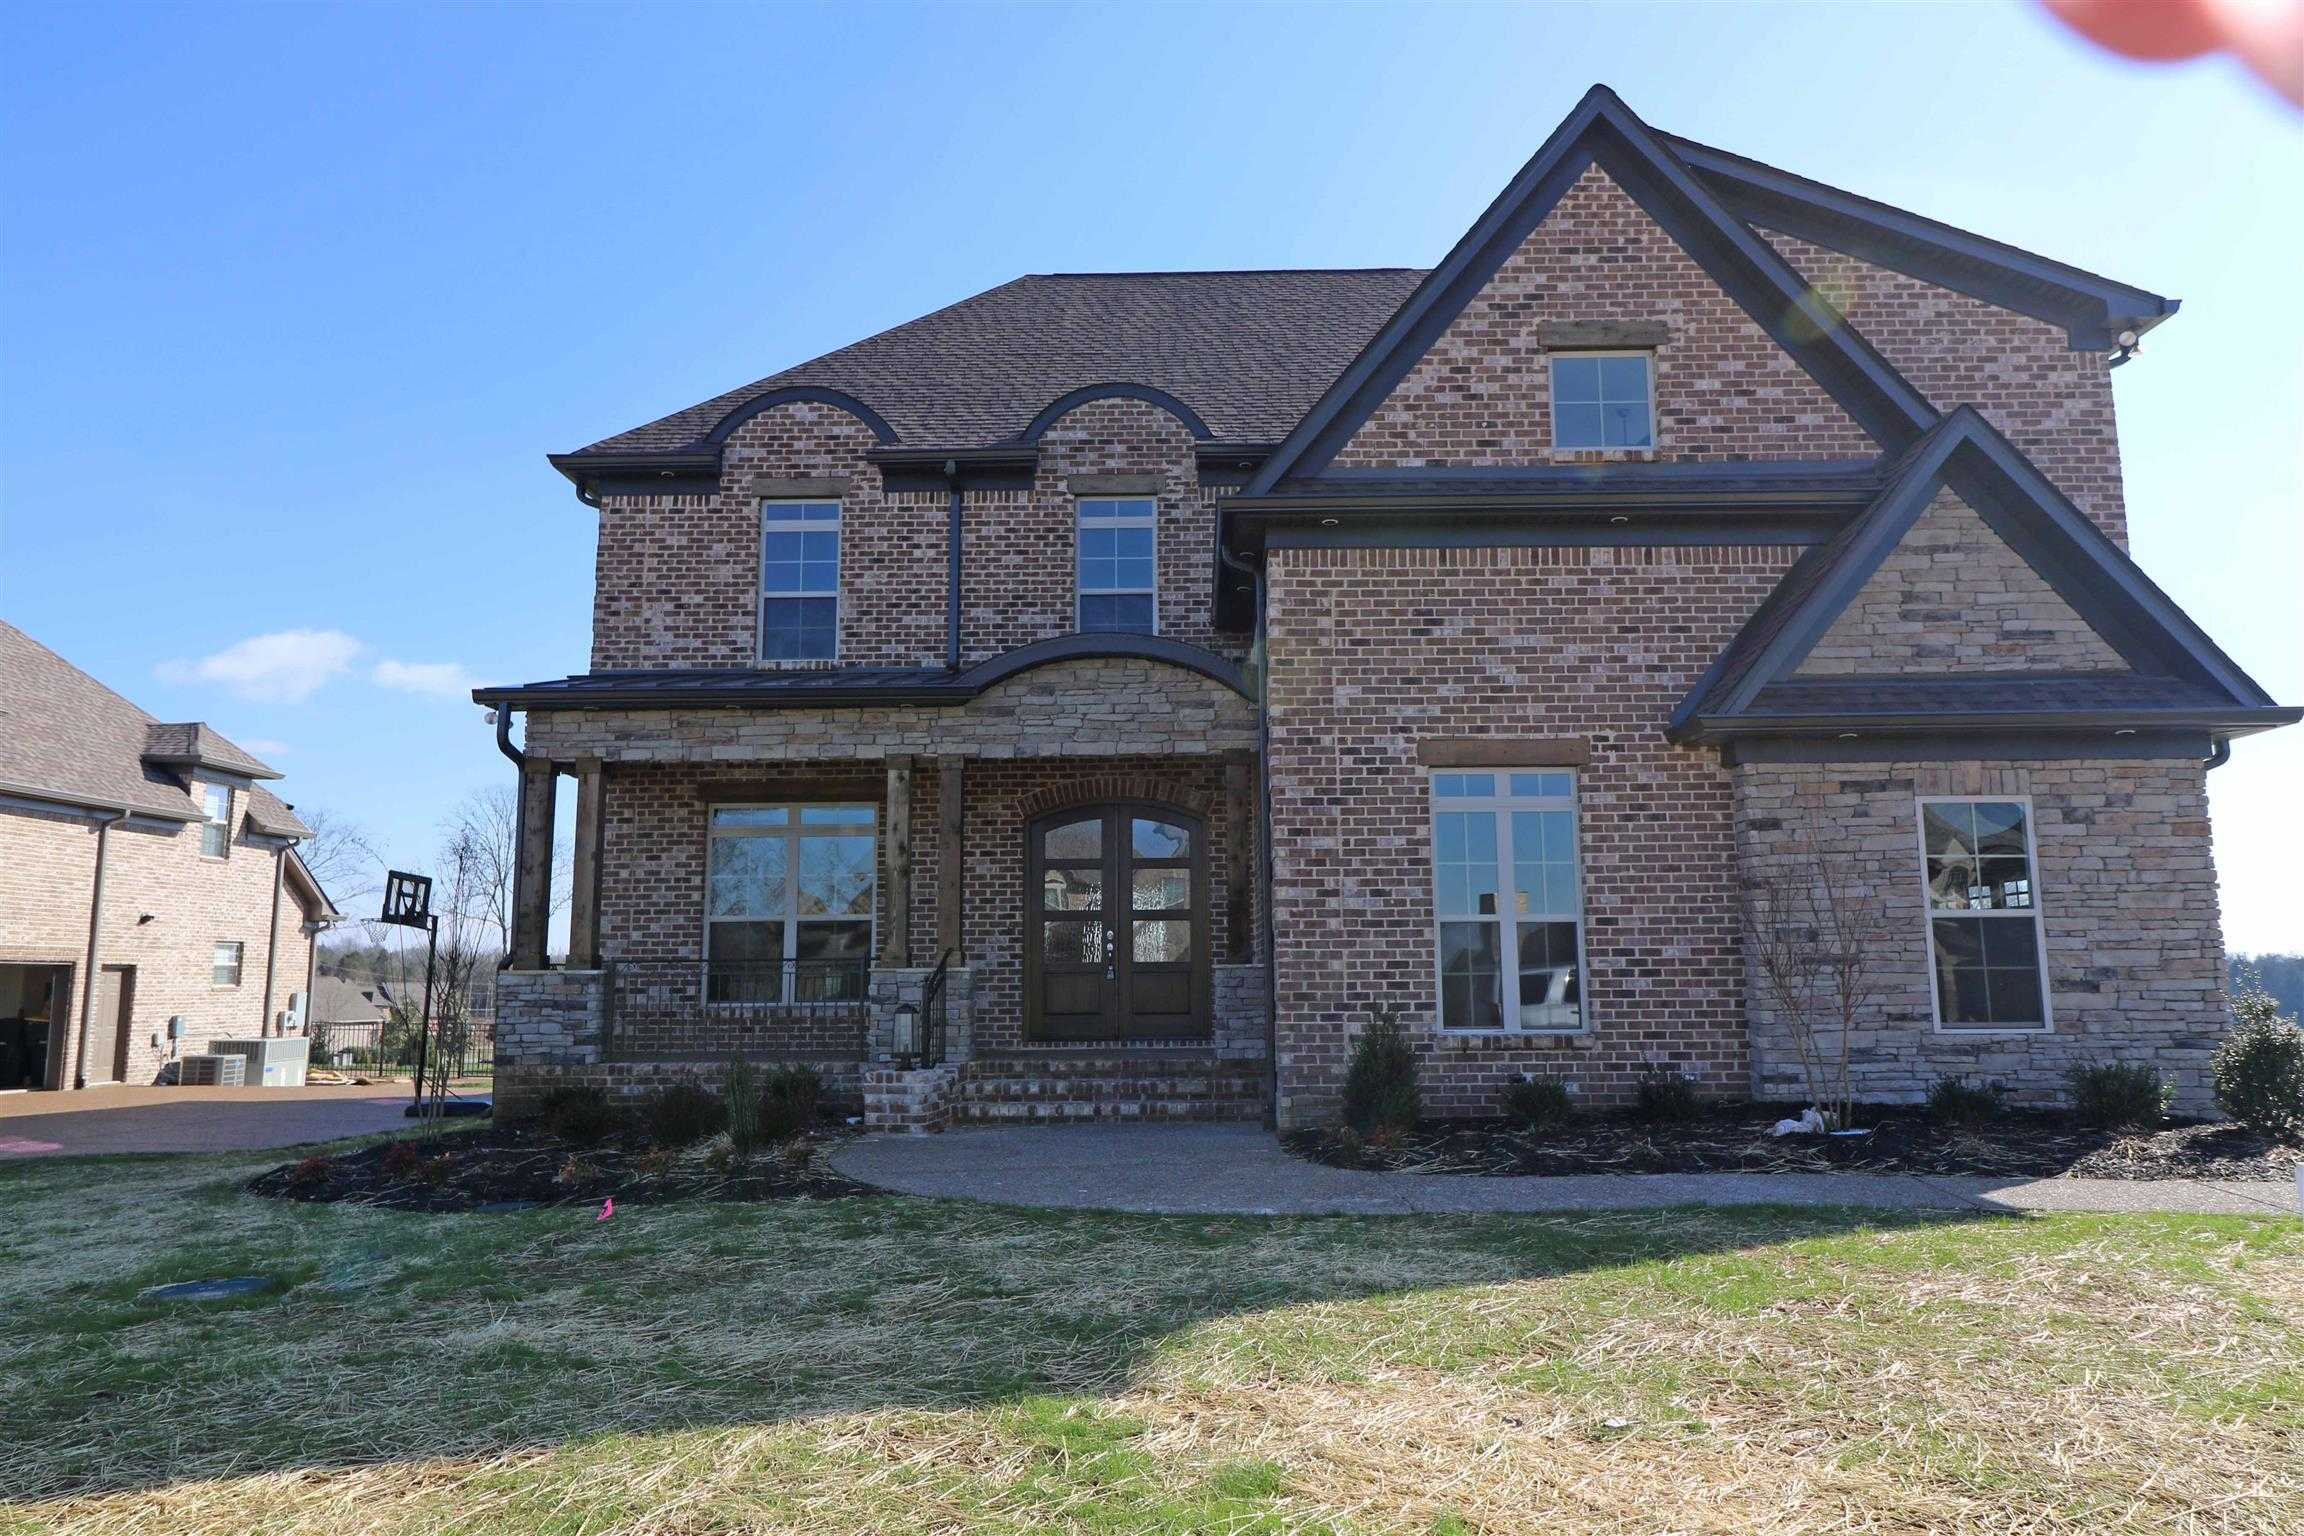 $699,900 - 4Br/4Ba -  for Sale in Wright Farms Sec. 4, Mount Juliet